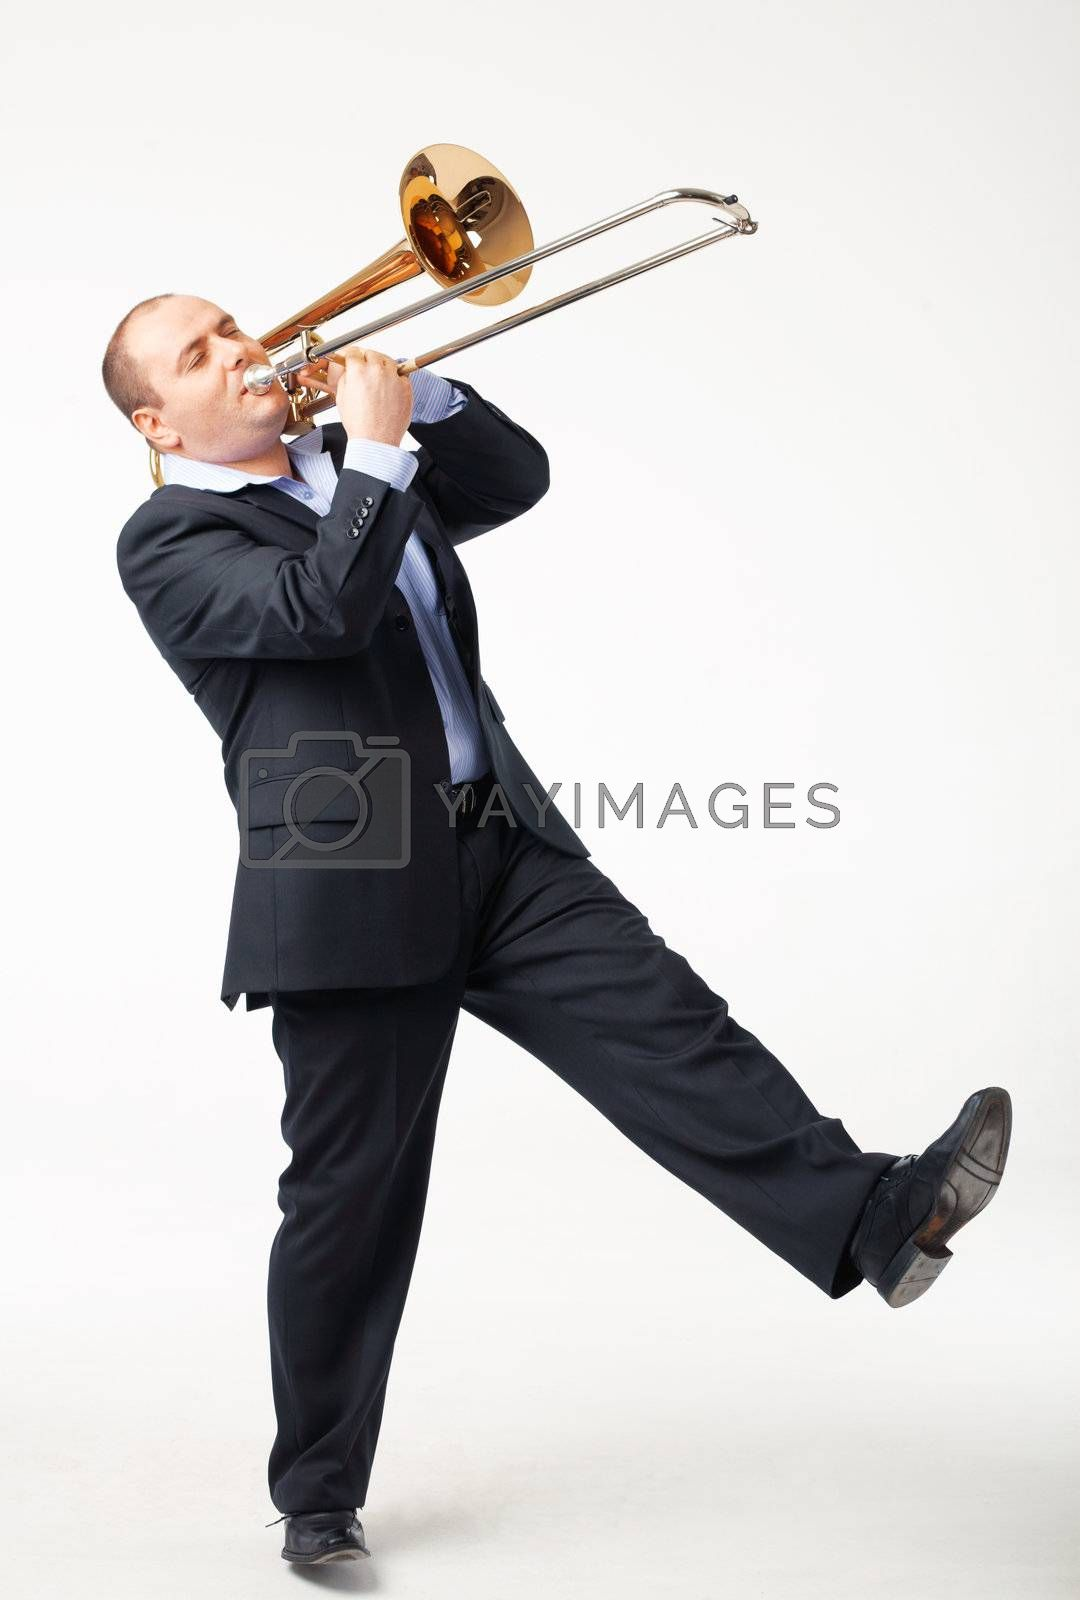 Portrait of a young man playing his trombone on white